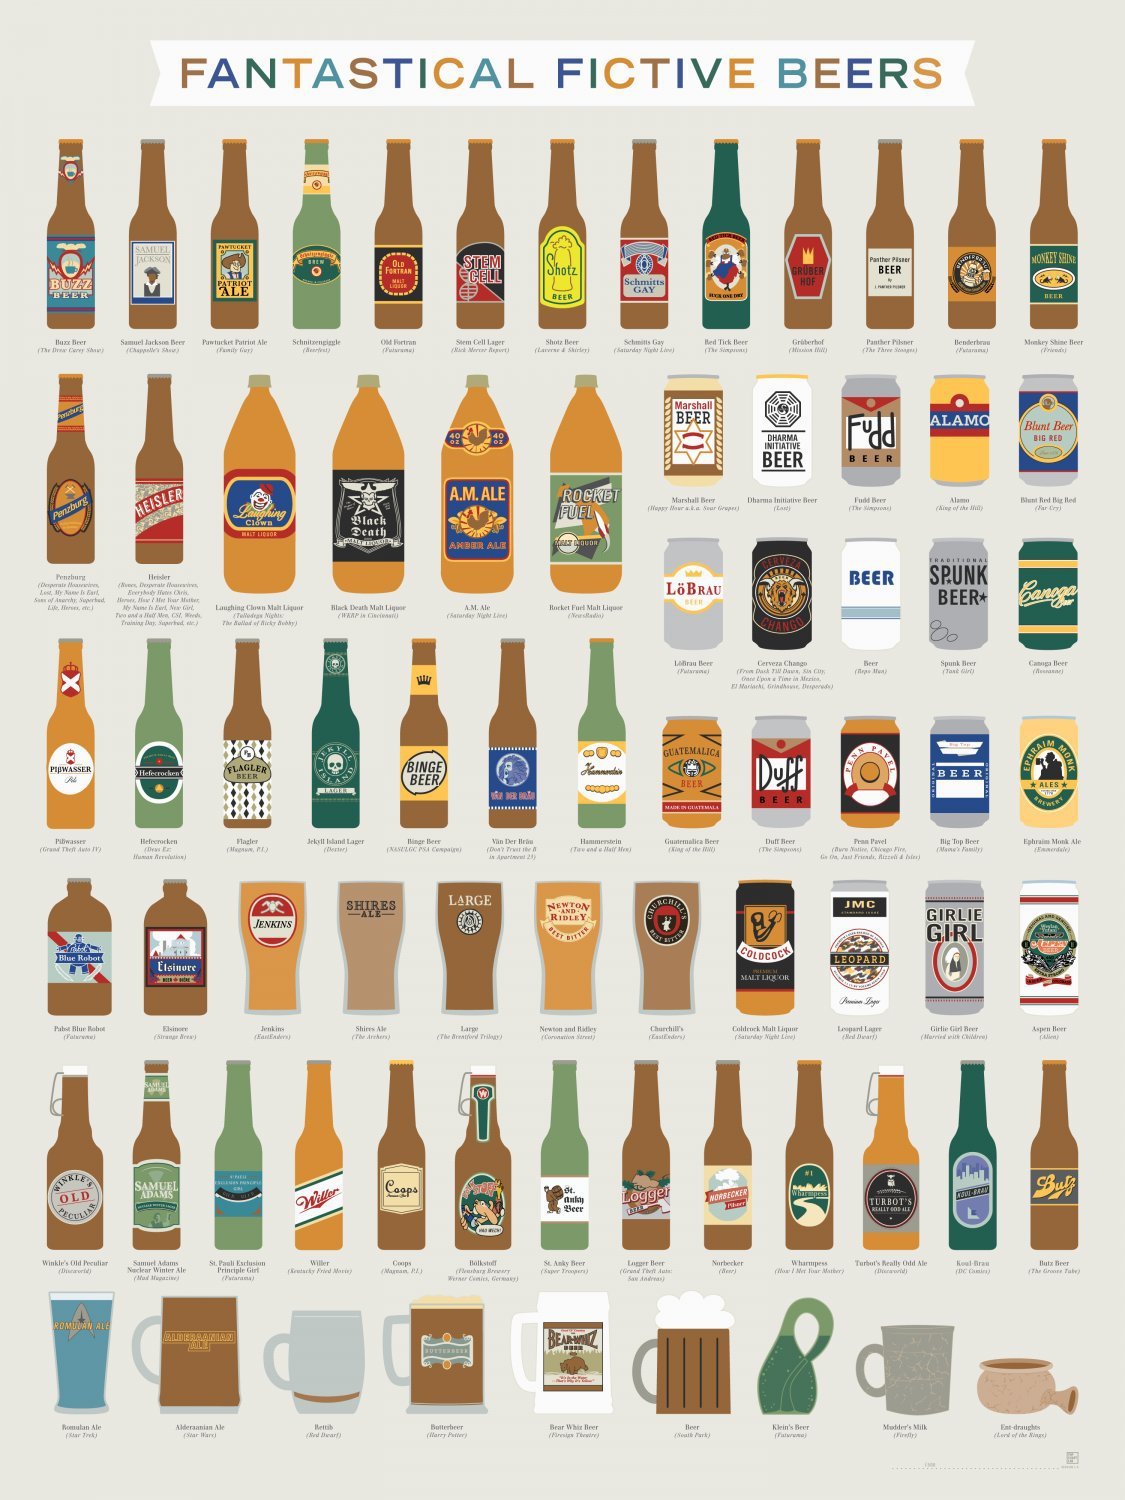 Fantastical Fictive Beers Chart  18x28 inches Poster Print